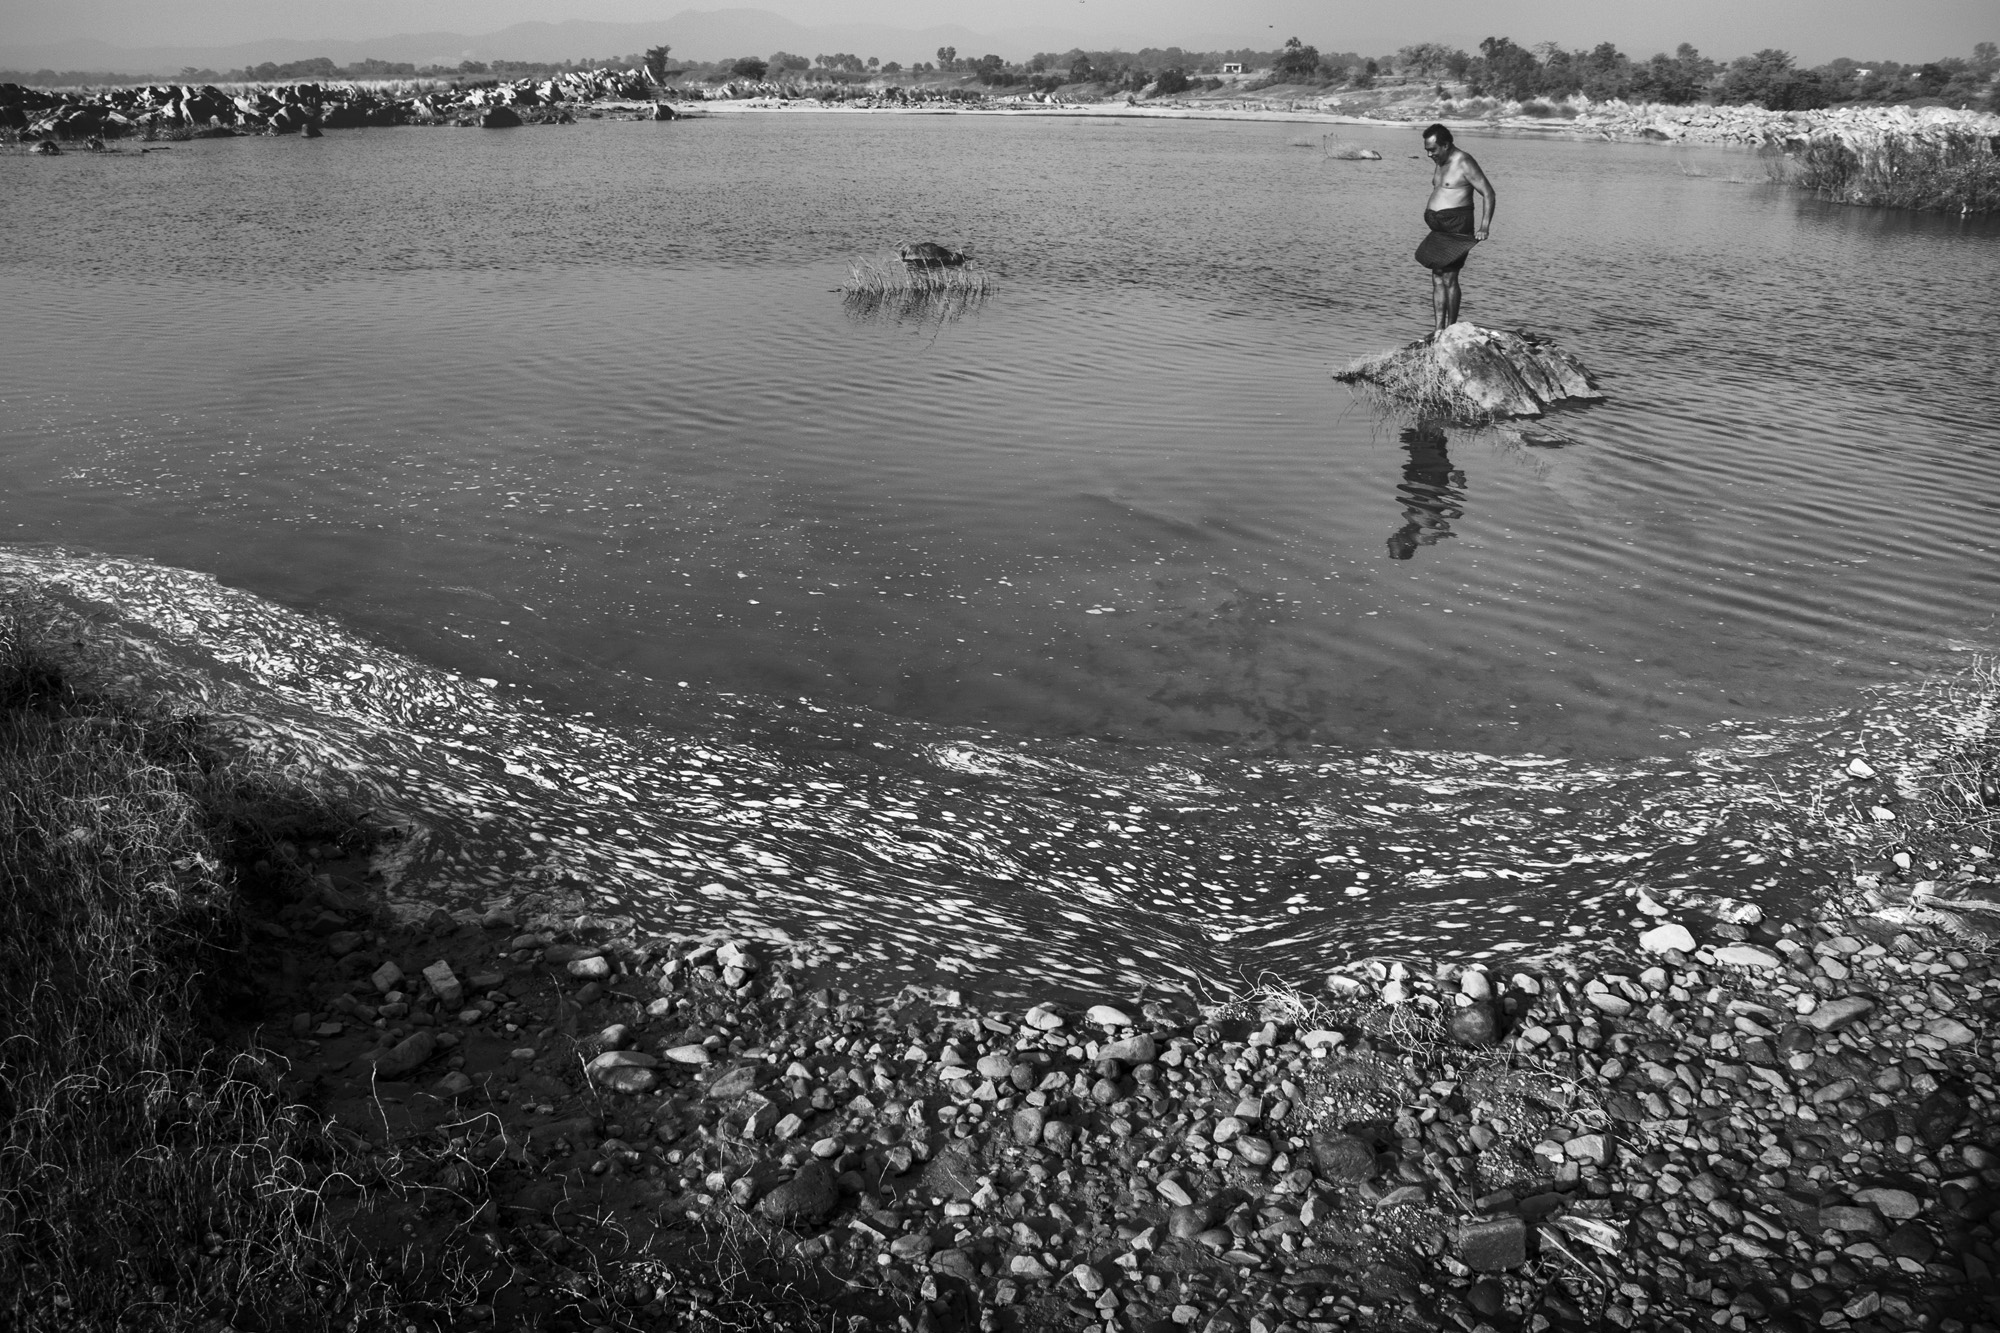 Subarnarekha river near Jaduguda that serves as a water source for villages. The toxic waste from the uranium processing factory and tailing ponds has contaminated the river causing severe health hazards argue residents. Photo by Subhrajit Sen.